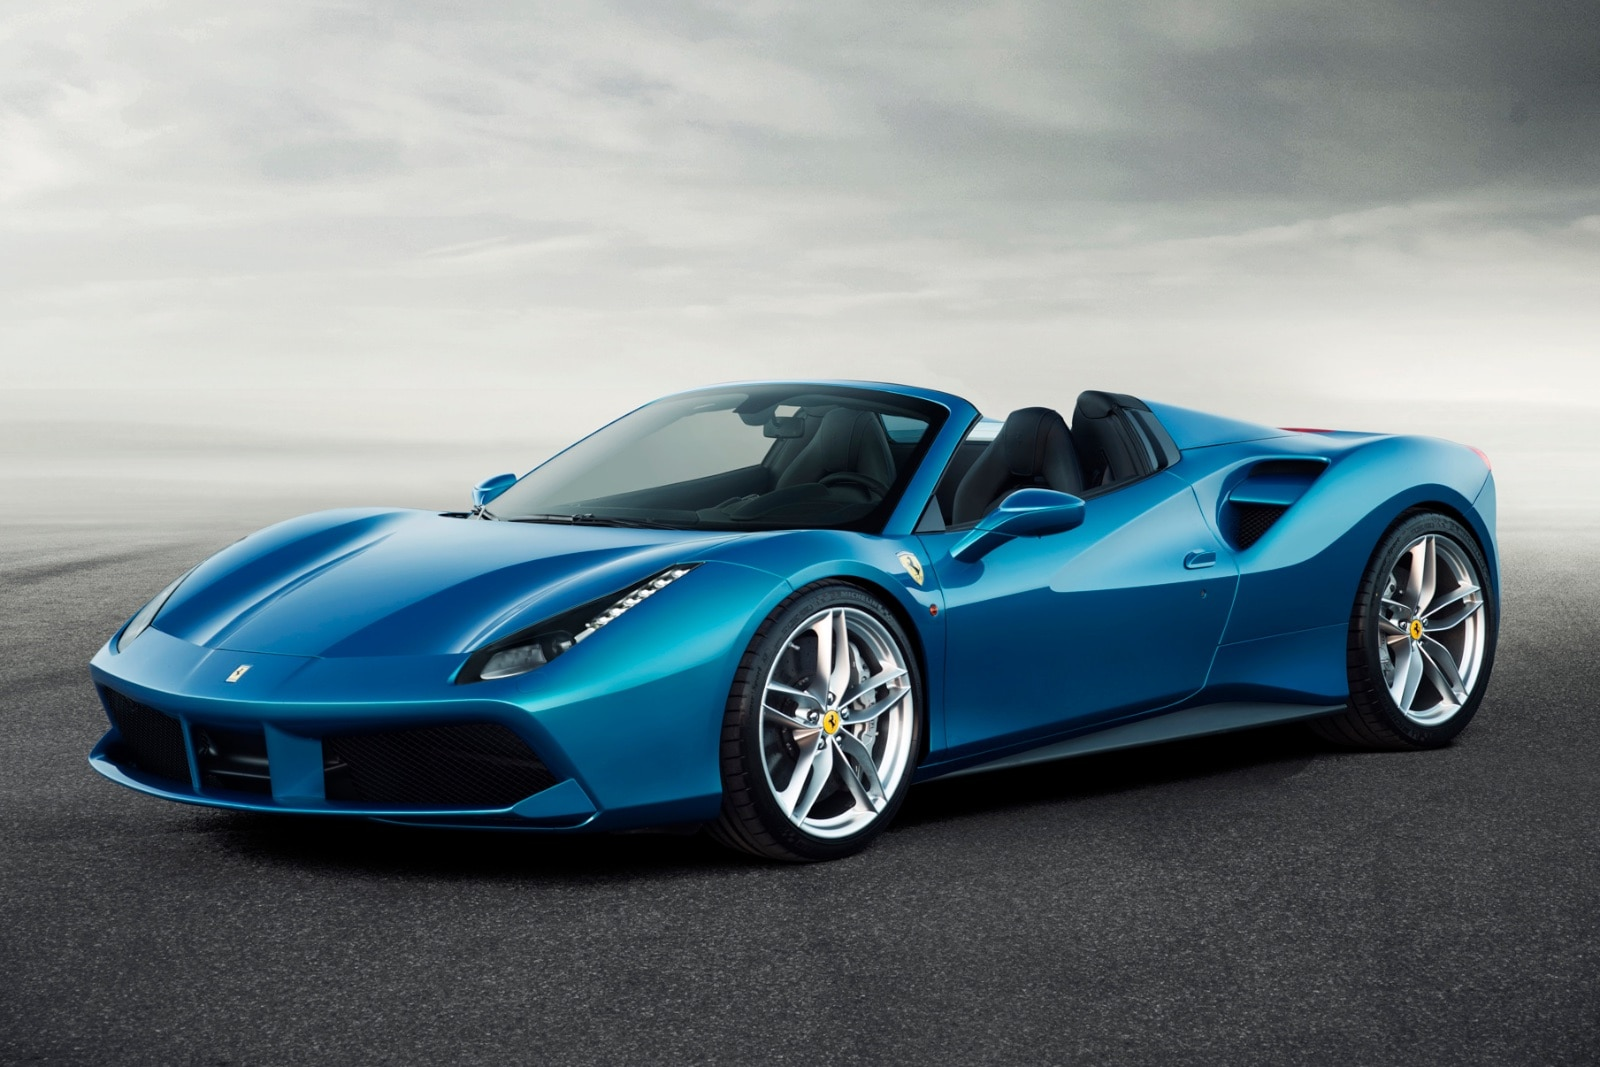 home new ferrari 2016 ferrari 488 spider 2016 ferrari 488 spider. Cars Review. Best American Auto & Cars Review